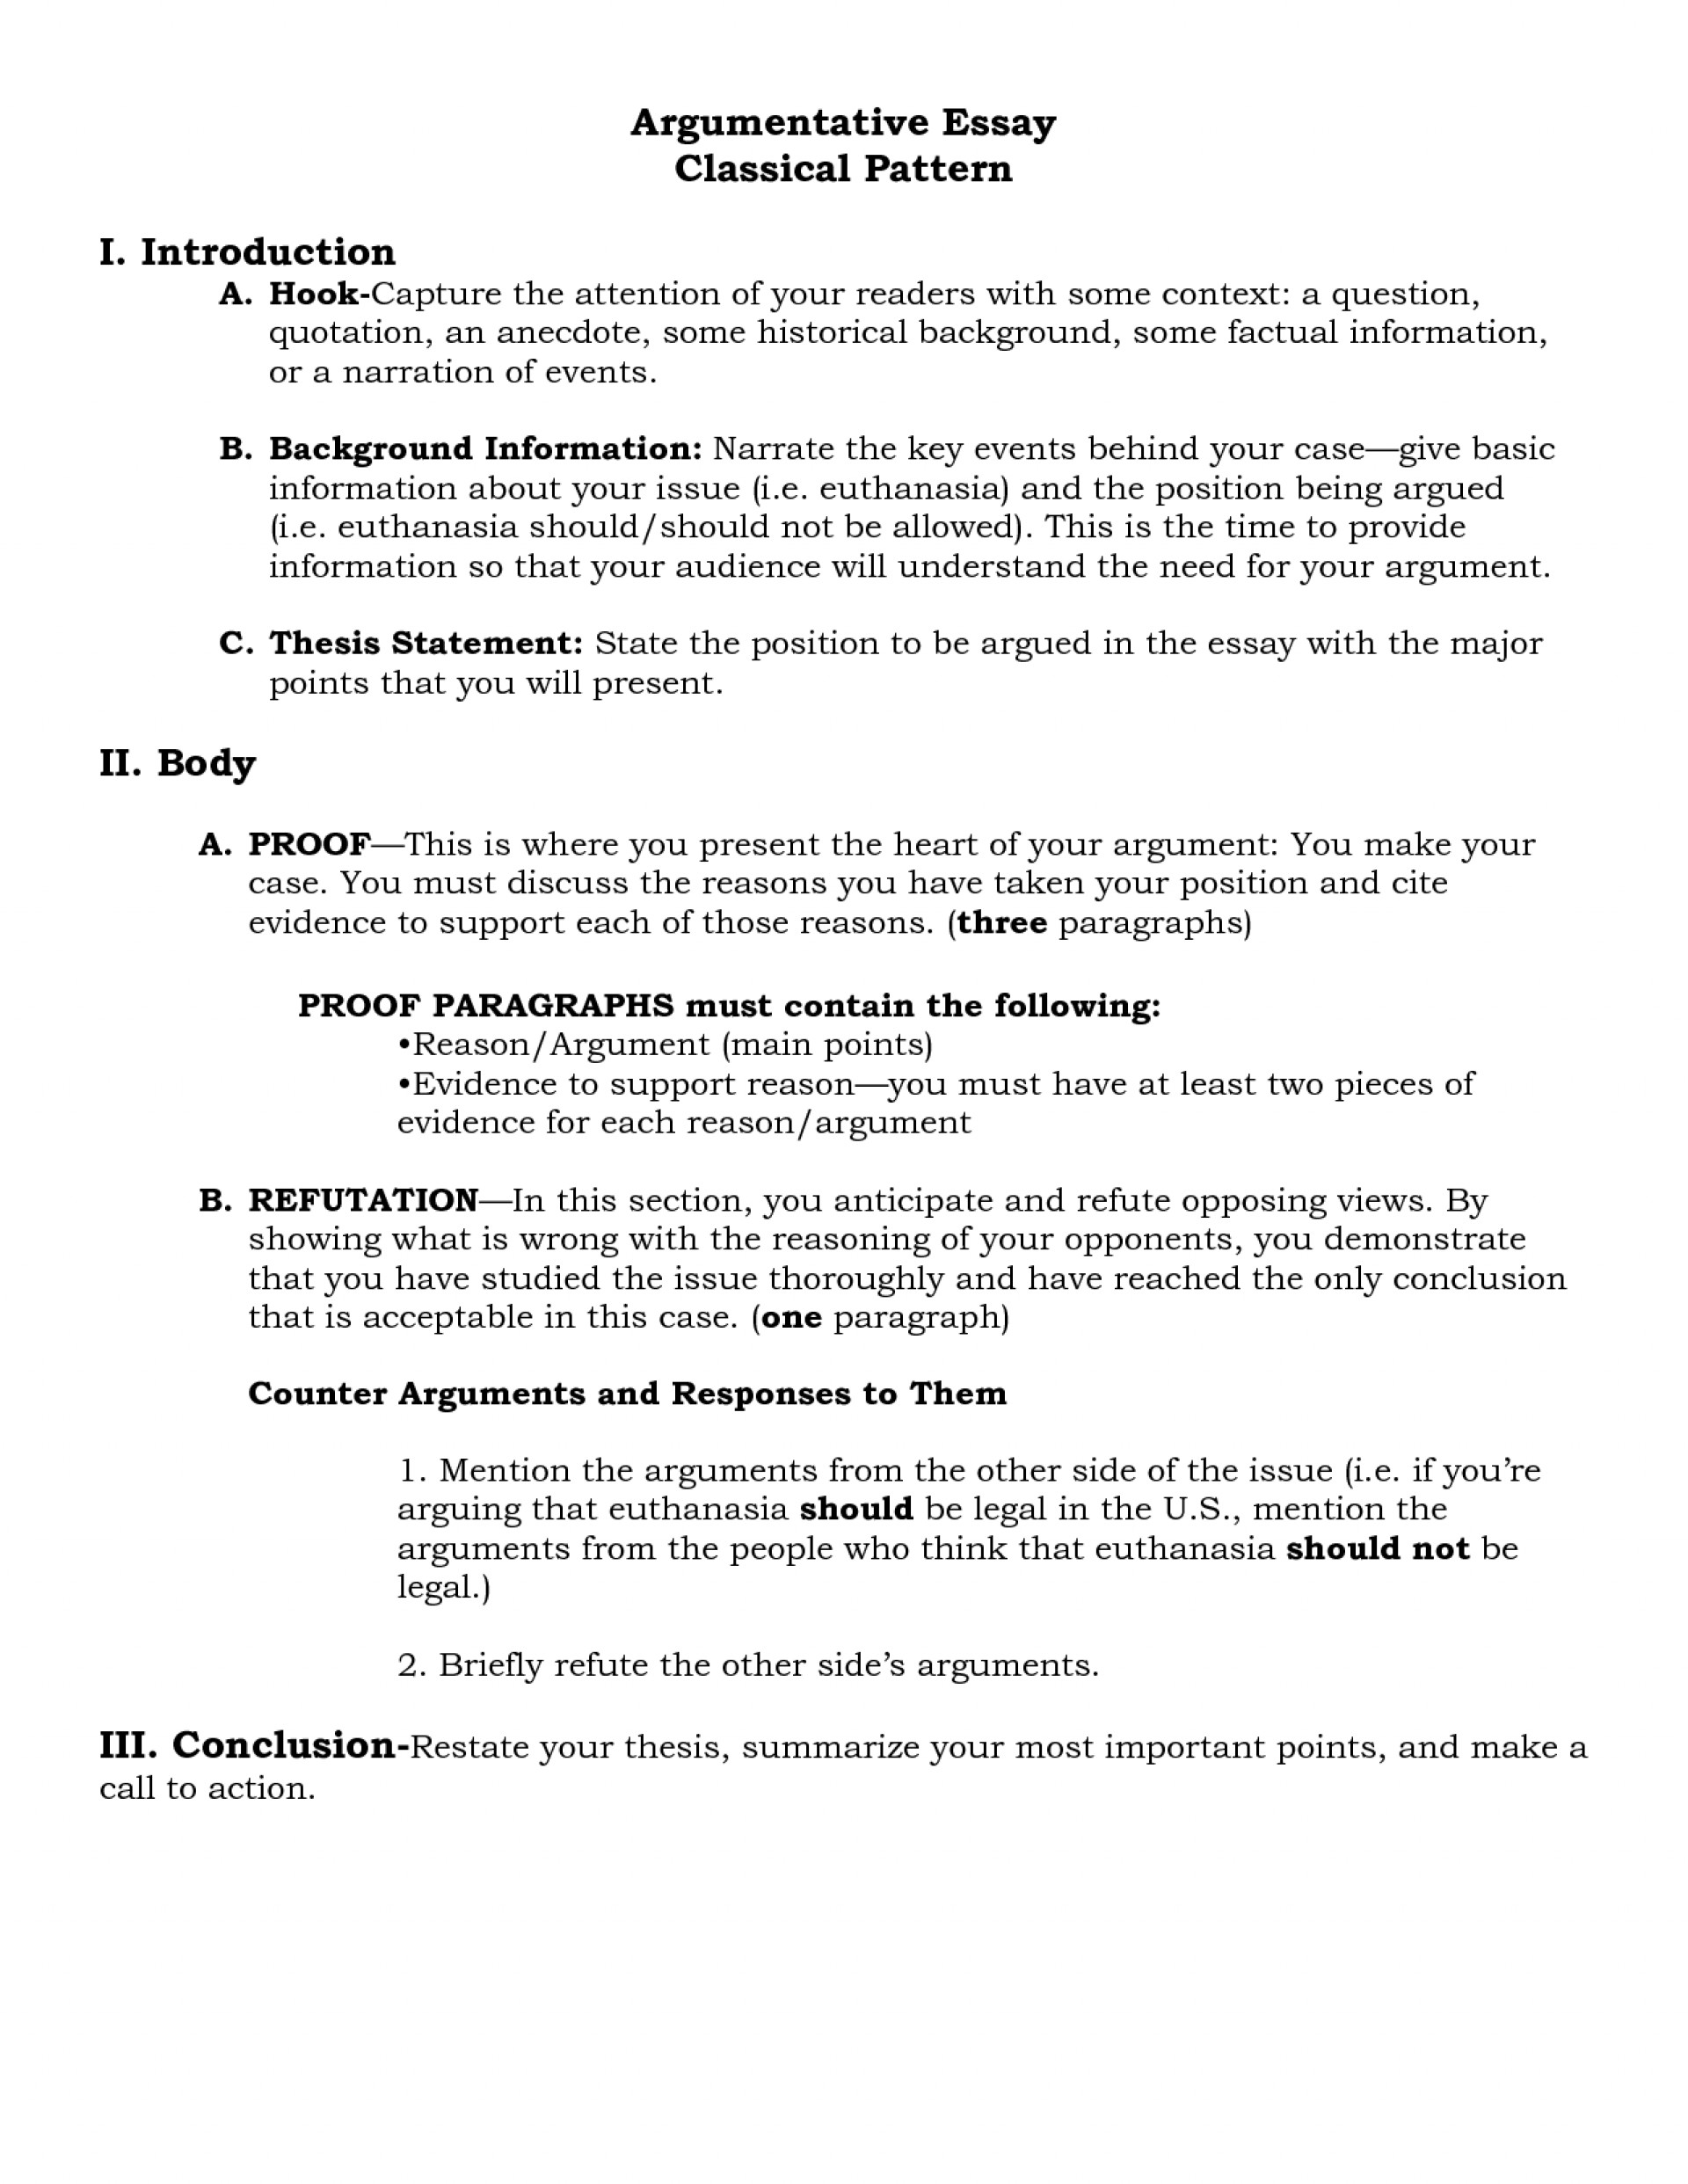 012 Research Paper Argument Essayucture Kays Makehauk Co For Argumentative Example Image Inspirations Template How To Make An Outline Rare A Examples 1920